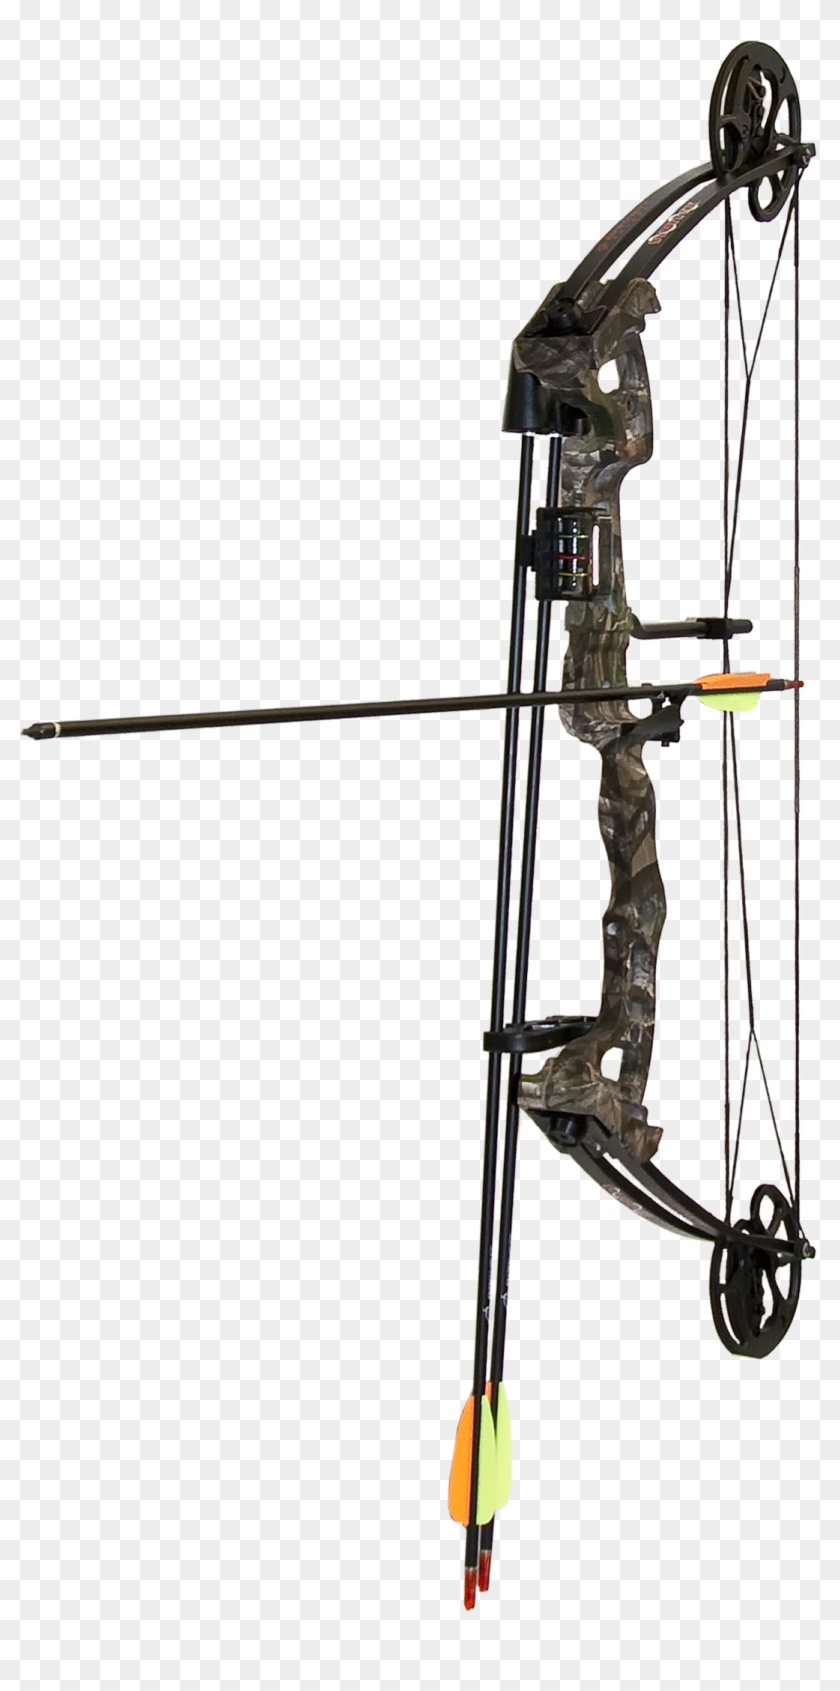 Compound Bow And Arrow Png.